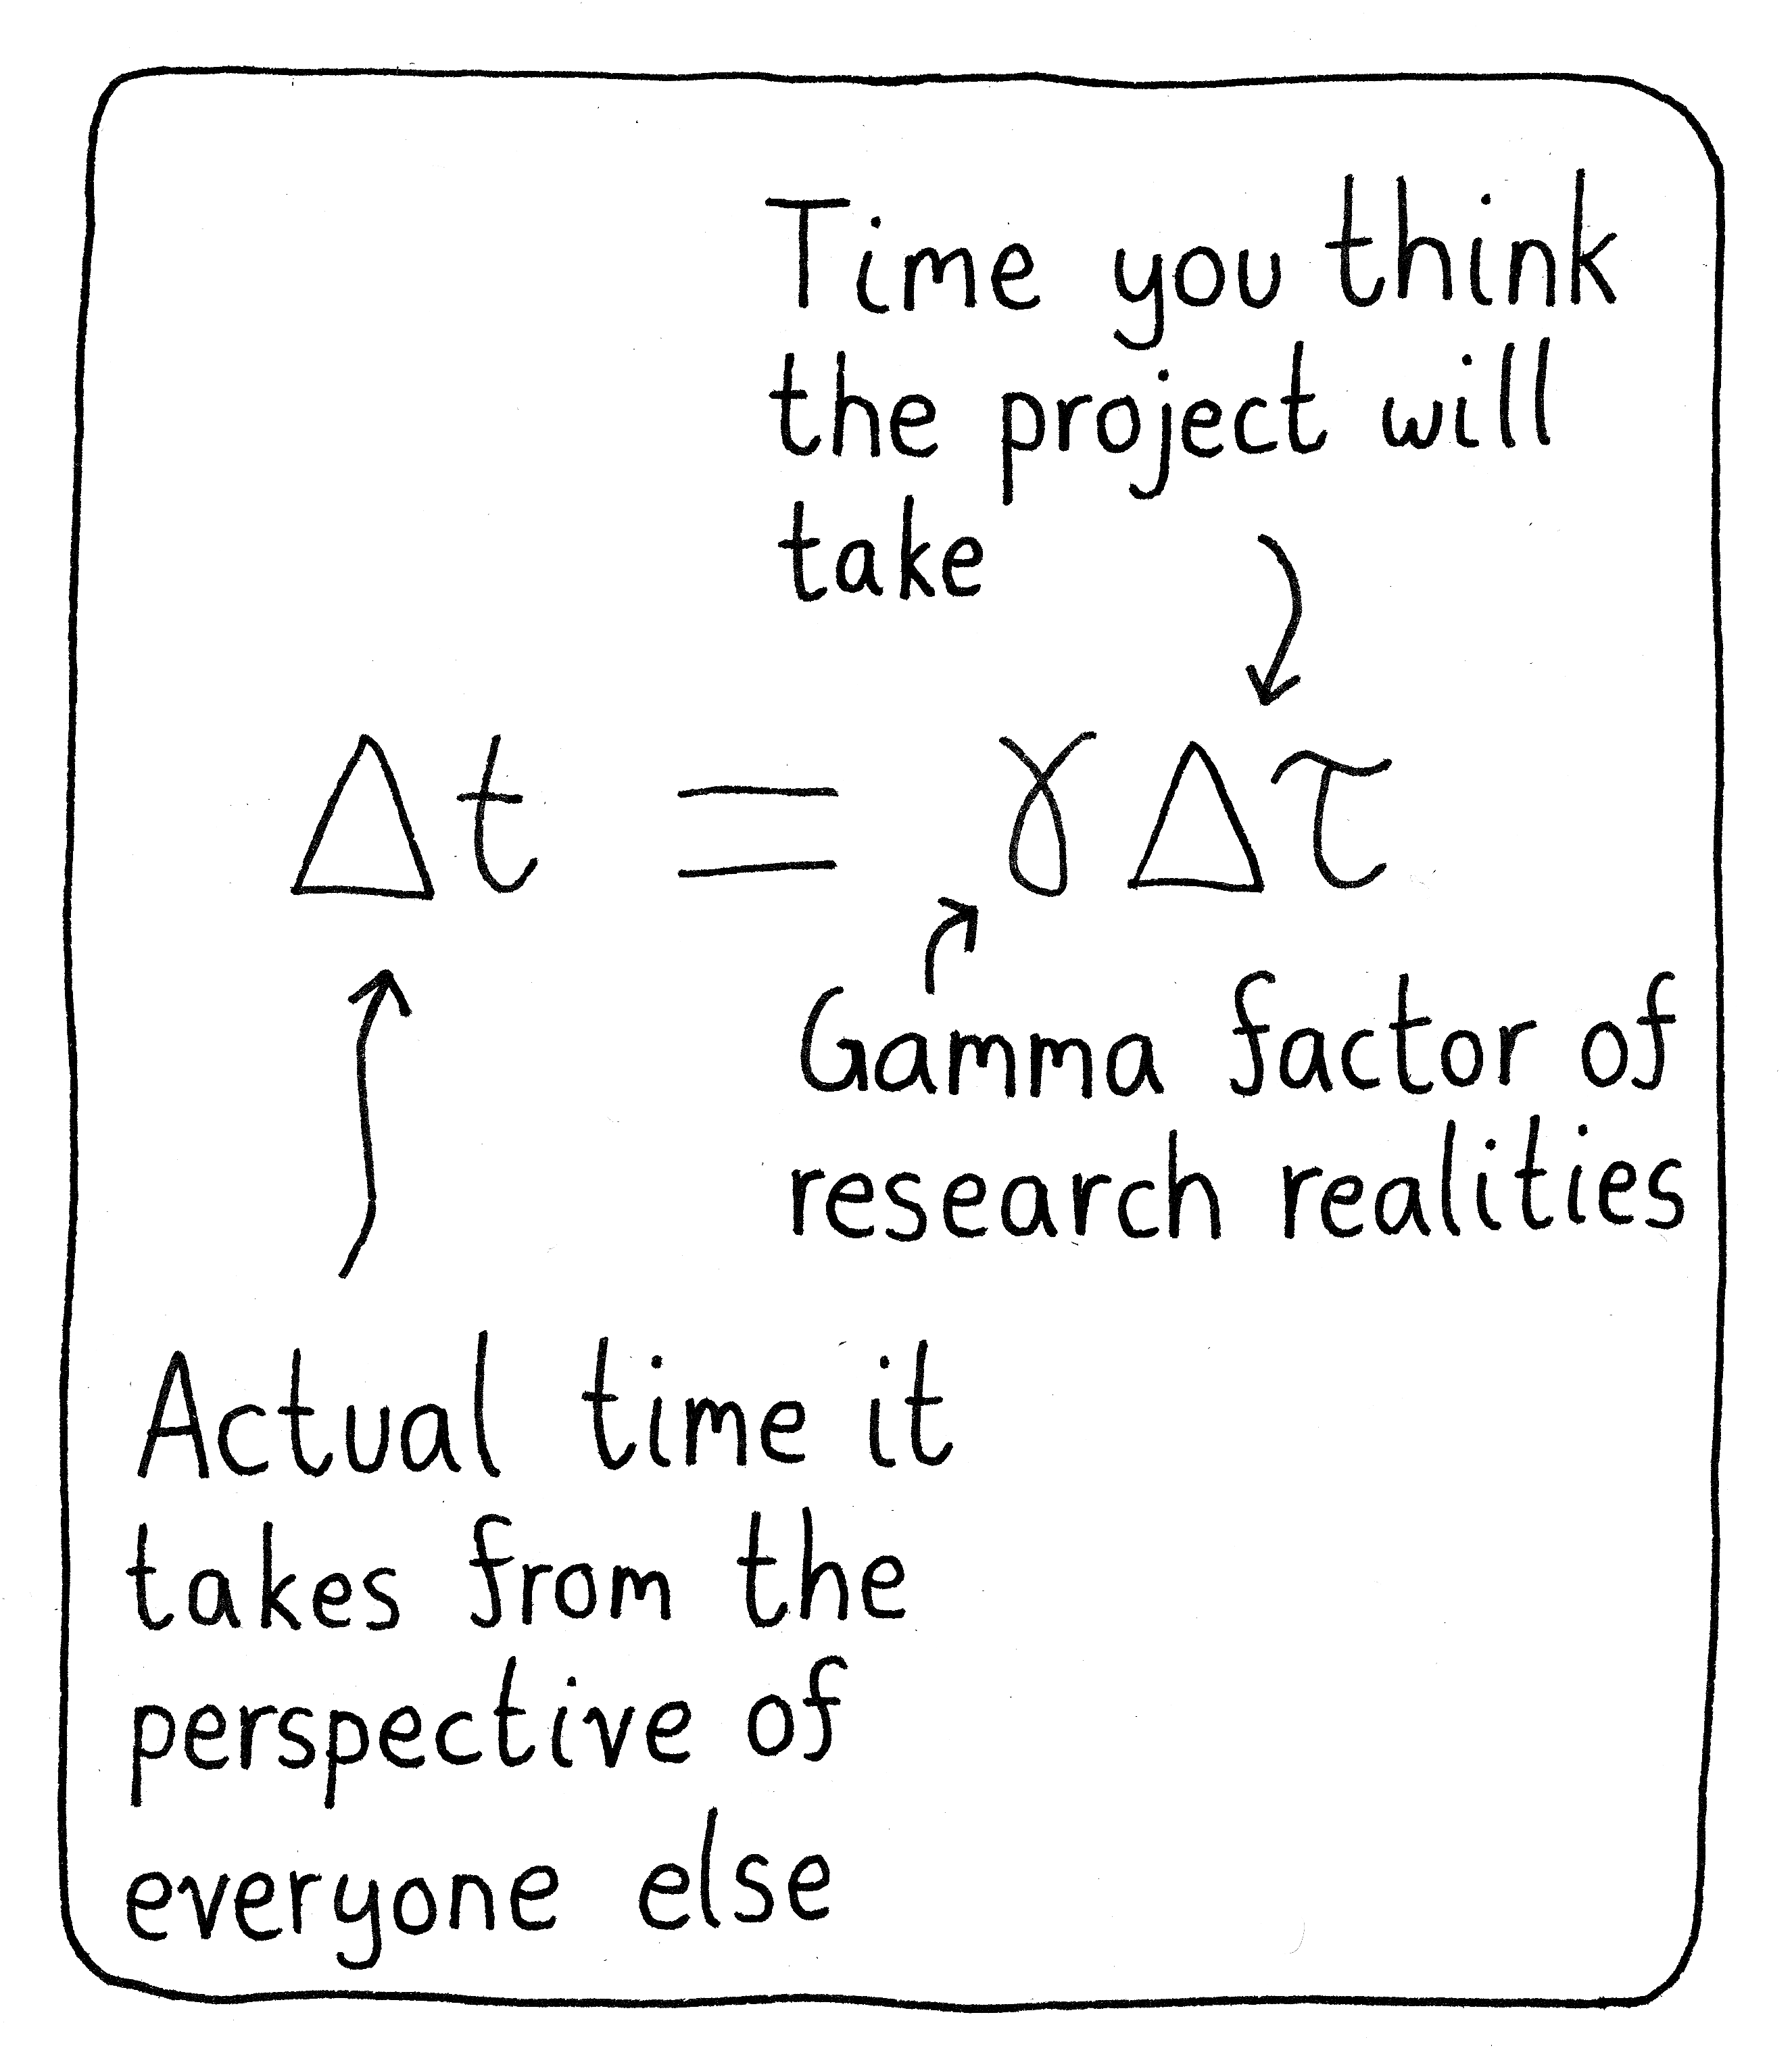 How the realities of research distort the time it takes to finish projects.